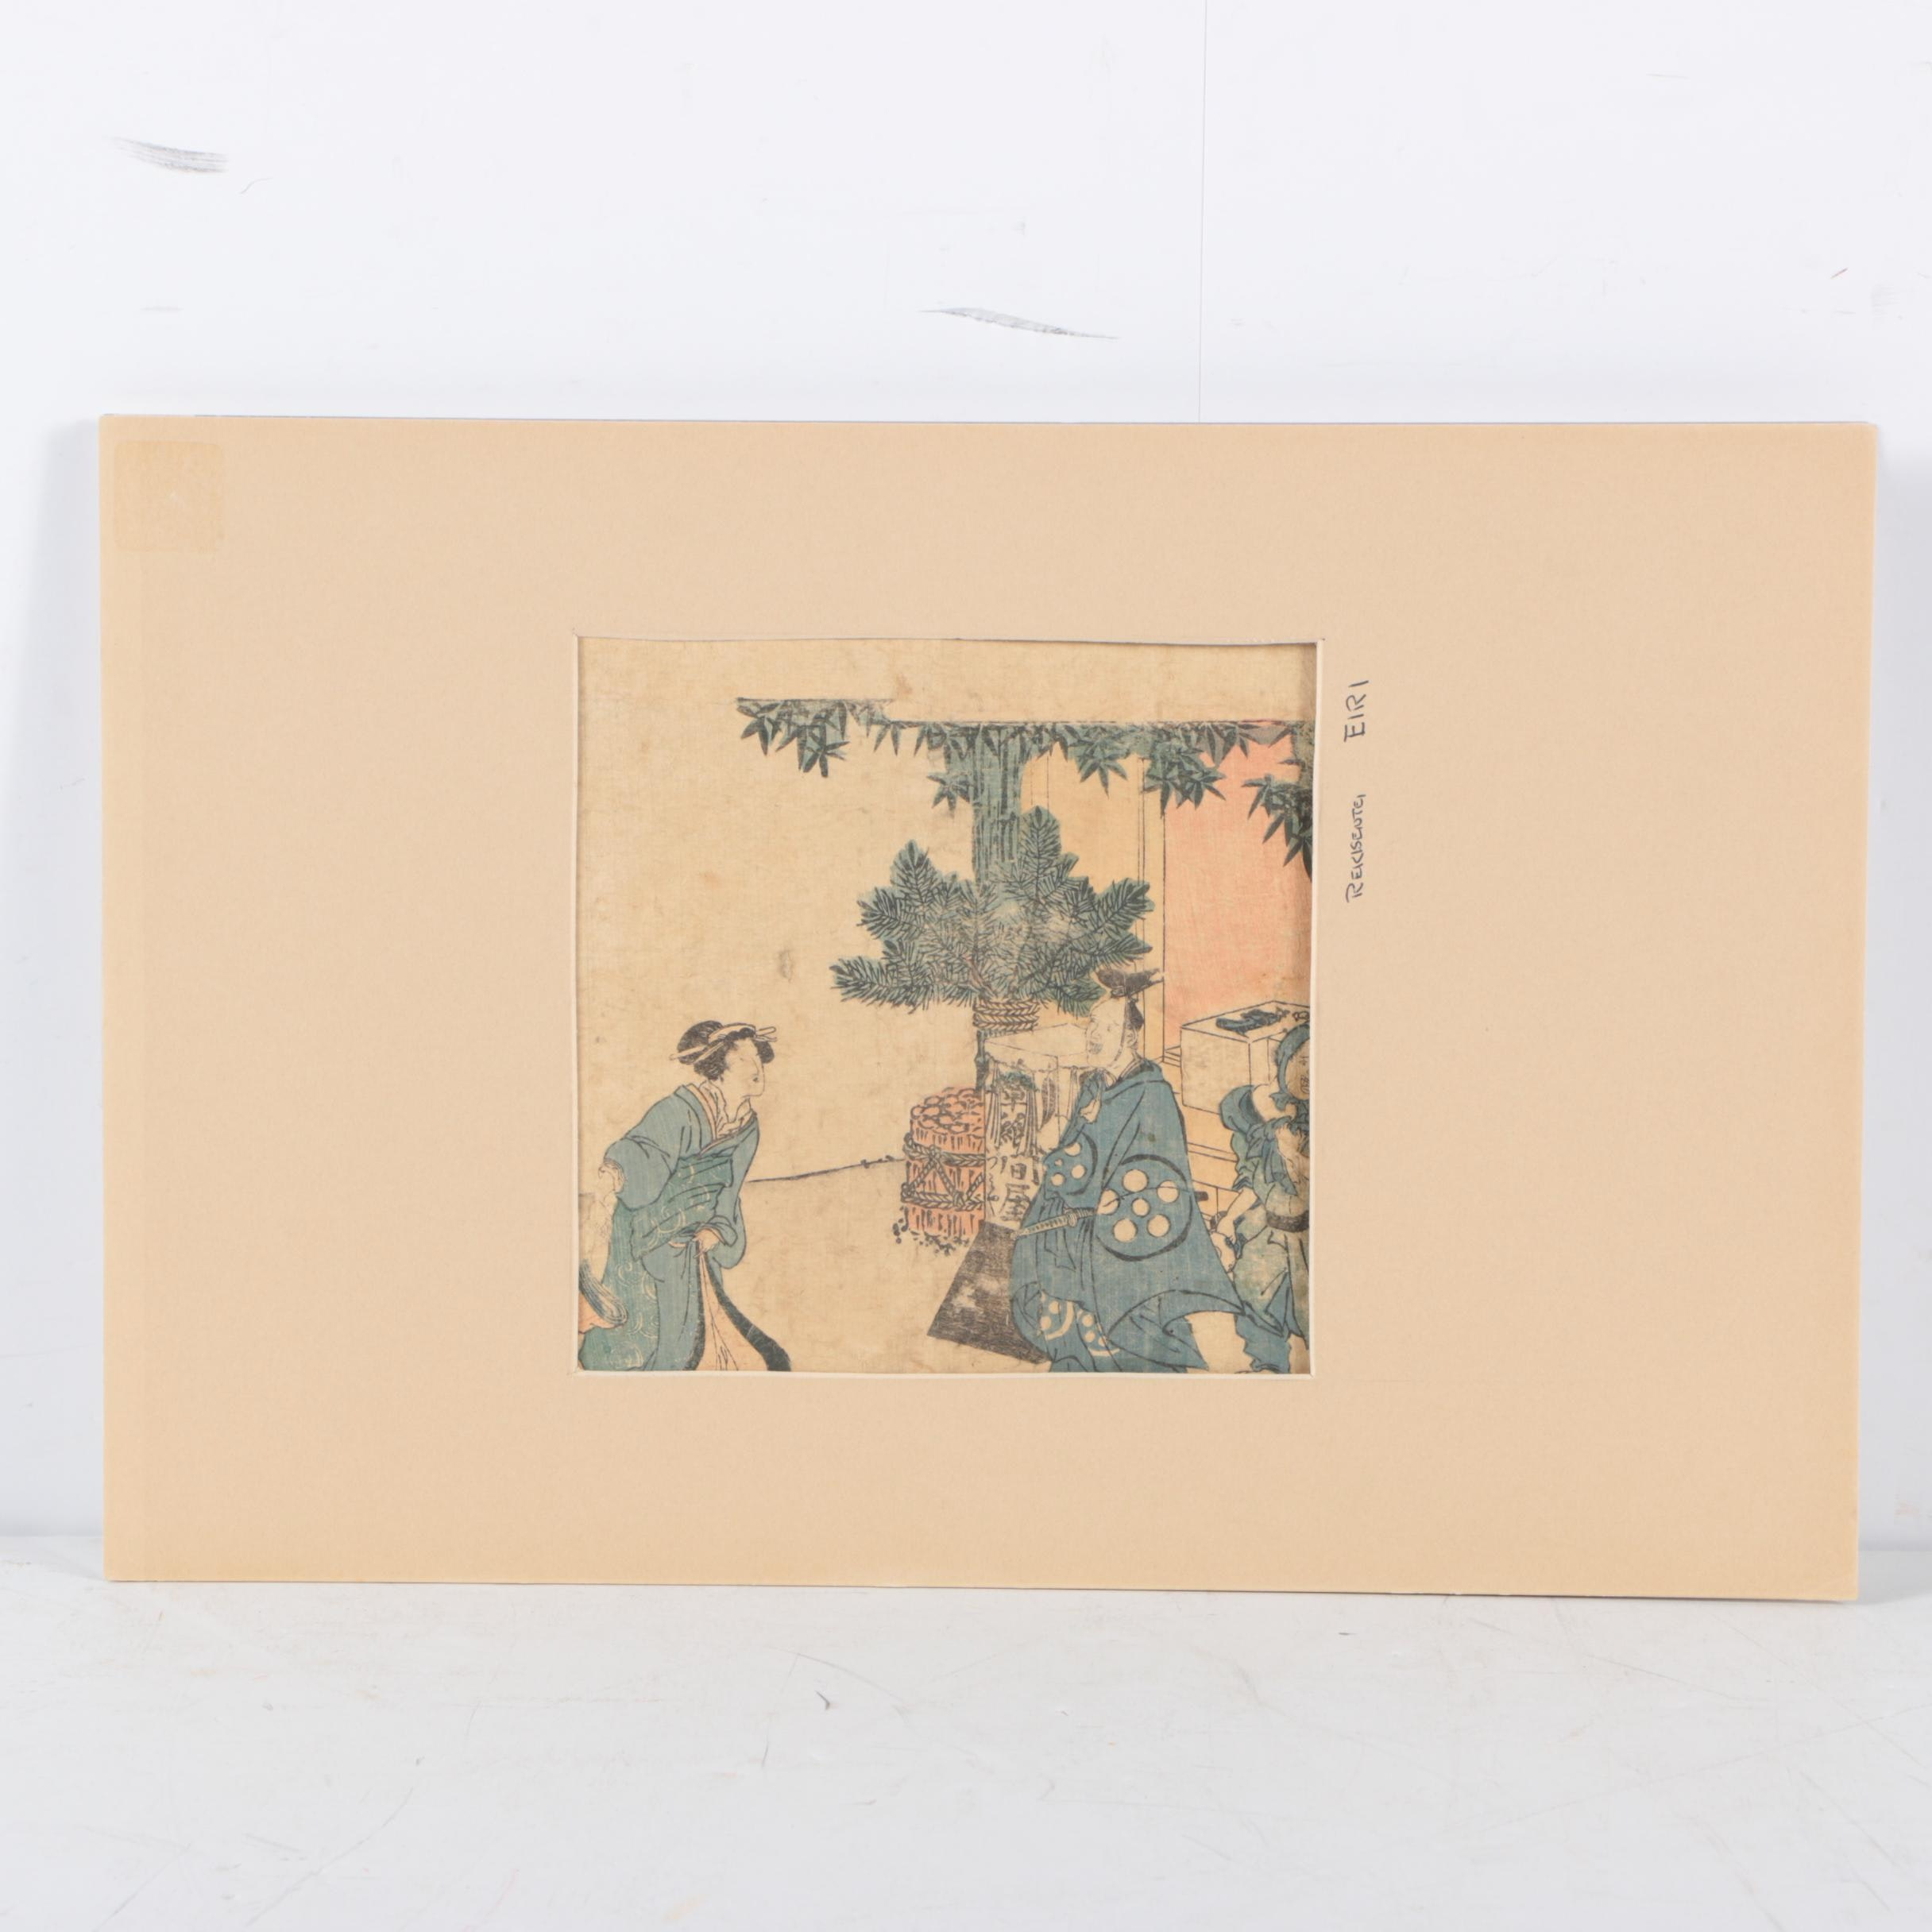 Antique Woodblock Print on Rice Paper Attributed to Rekisentei Eiri